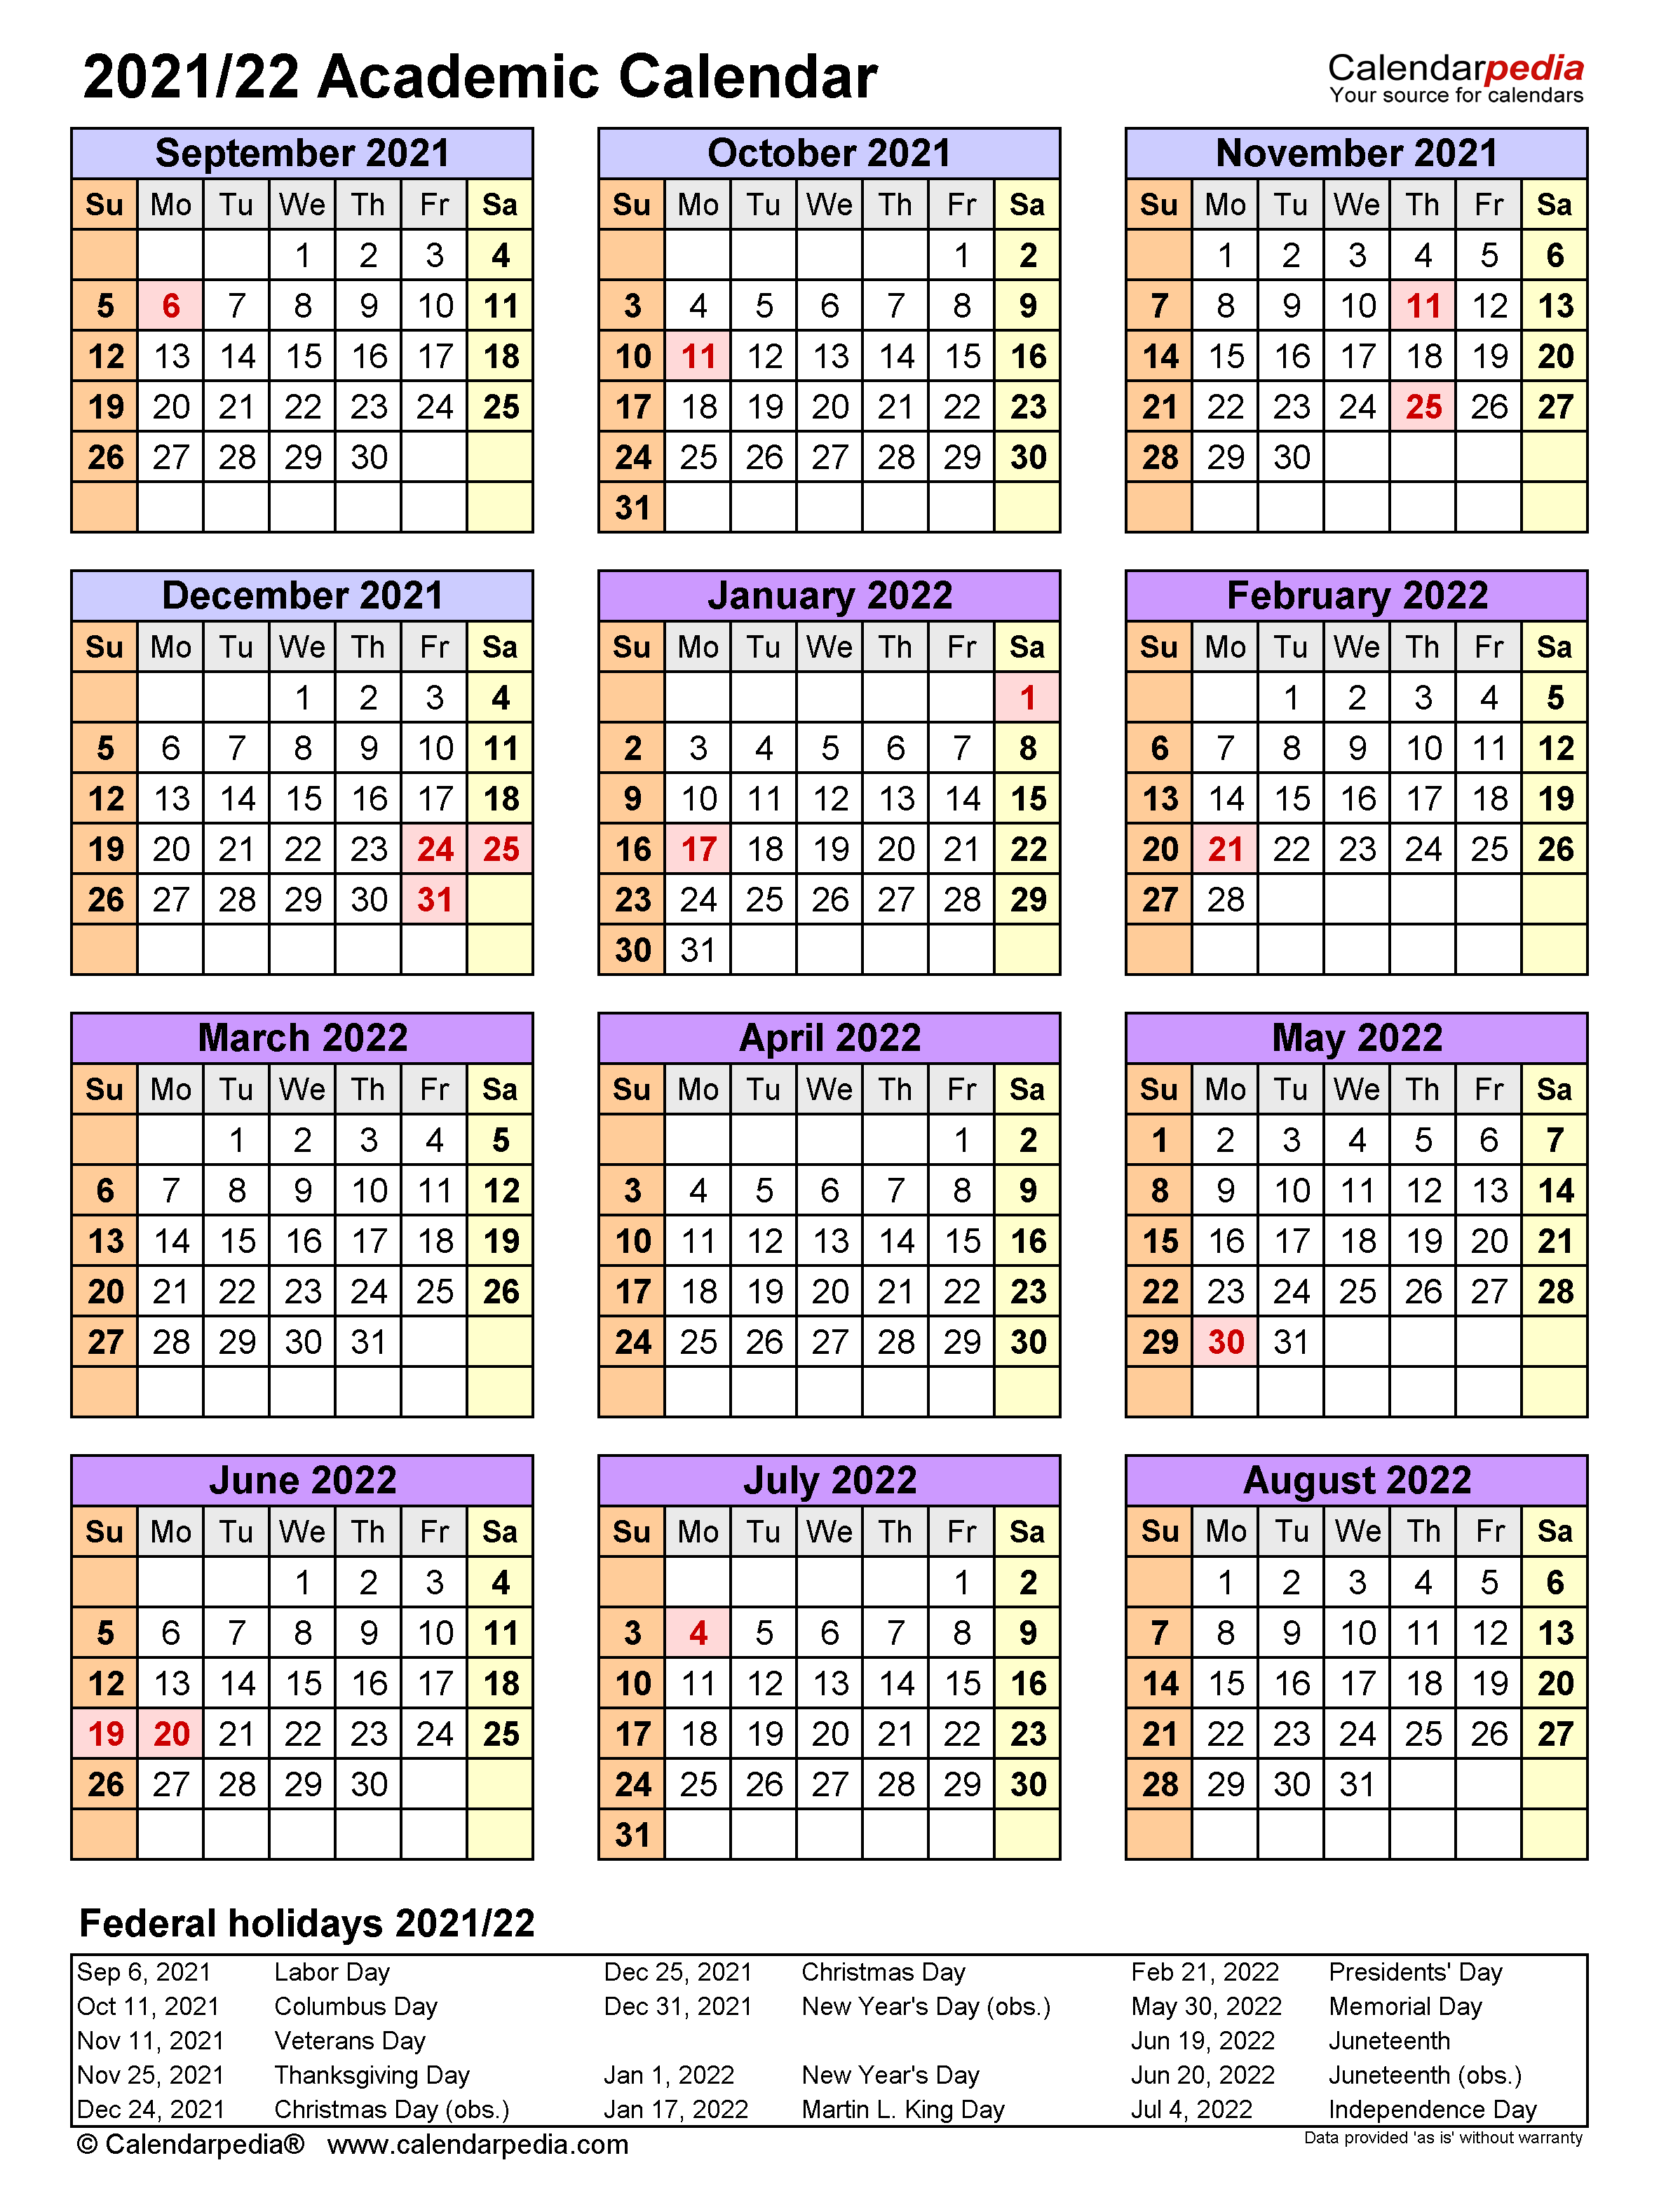 Calendar School Year 2021-22 Academic Calendars 2021/2022   free printable Word templates